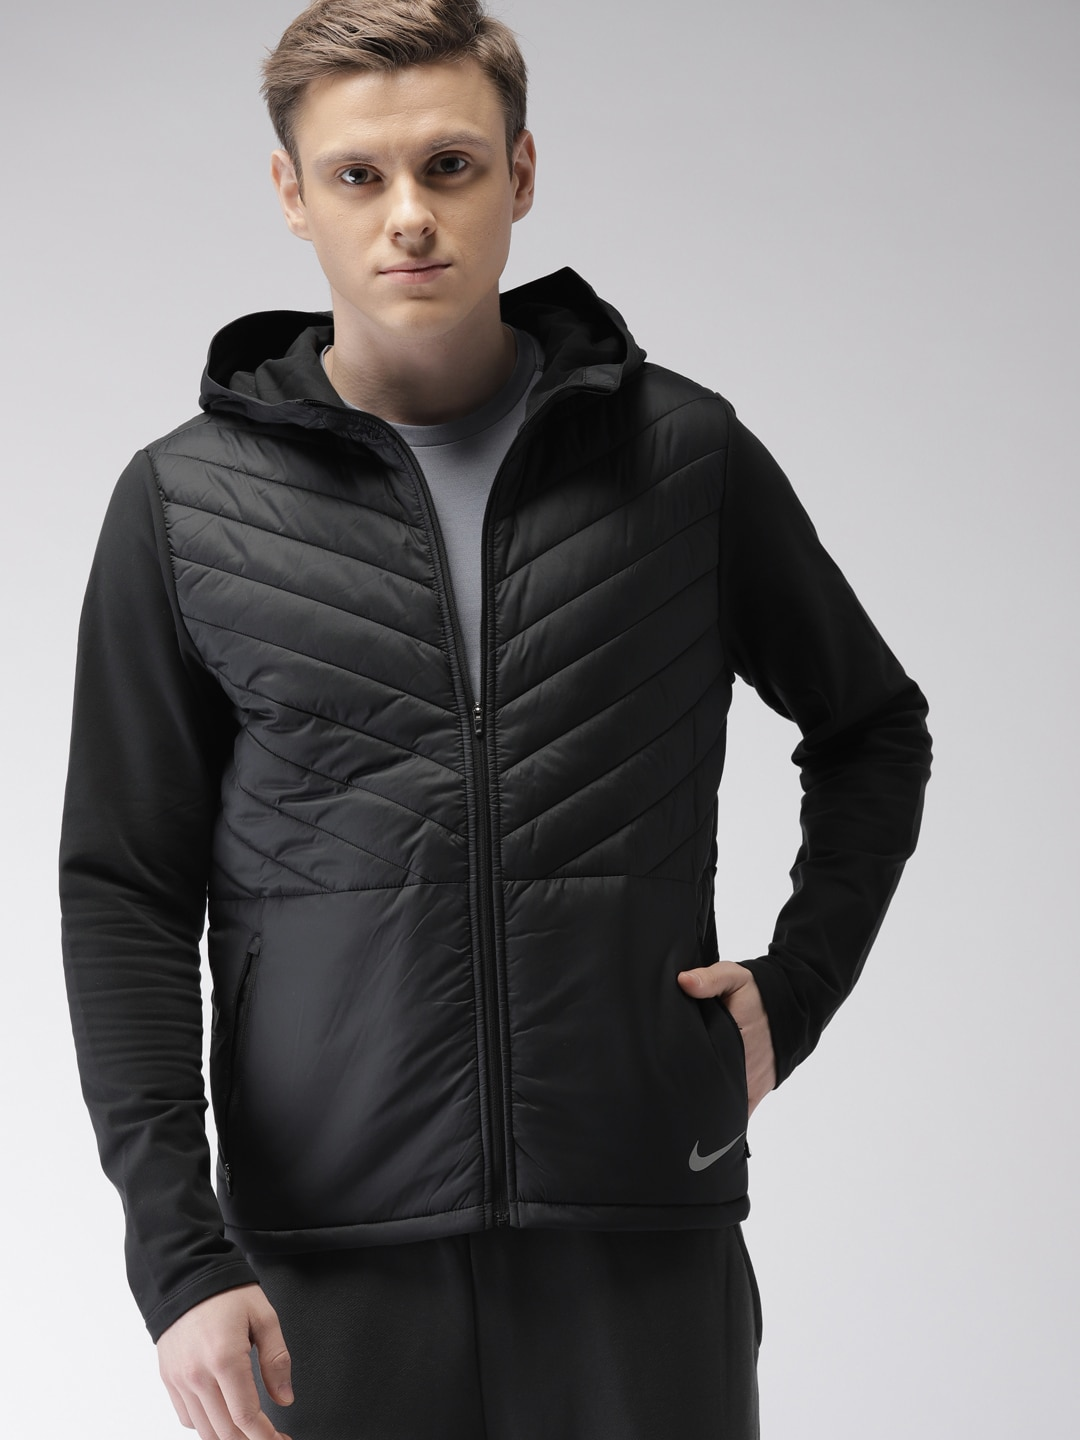 8a91b6a89649 Nike Jackets - Buy Nike Jacket for Men   Women Online